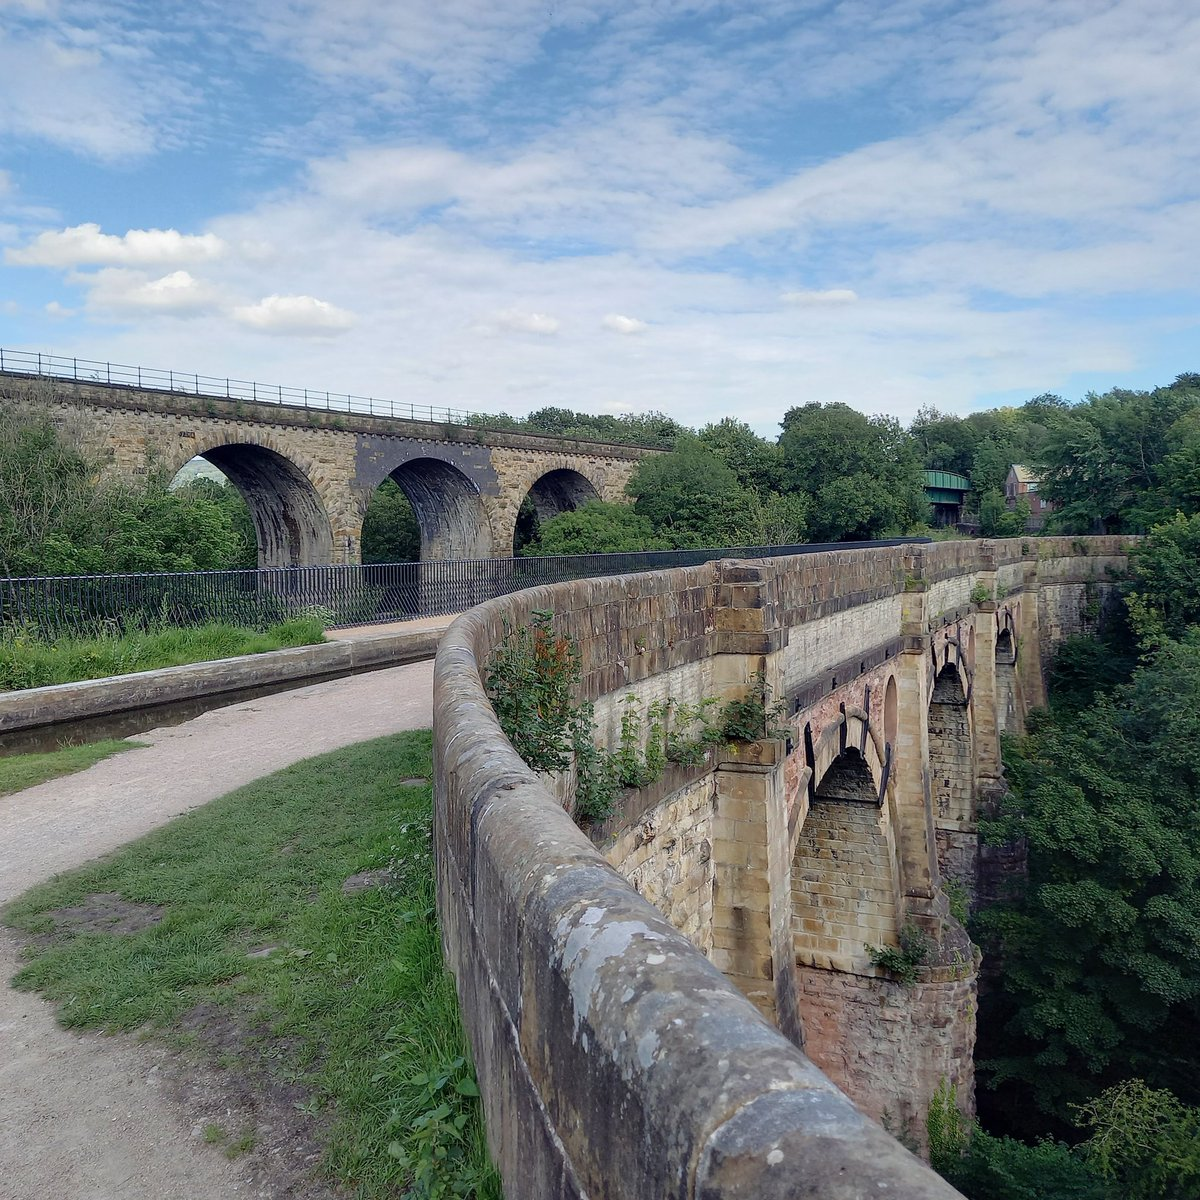 Stockport has got some marvellous viaducts and a superb aqueduct.  #marpleaqueduct #canal #canals #marple #stockport #spottedinstockport #aqueduct #aqueducts #viaduct #viaducts #marpleviaduct #peakforestcanalpic.twitter.com/6kQLrJmKeX